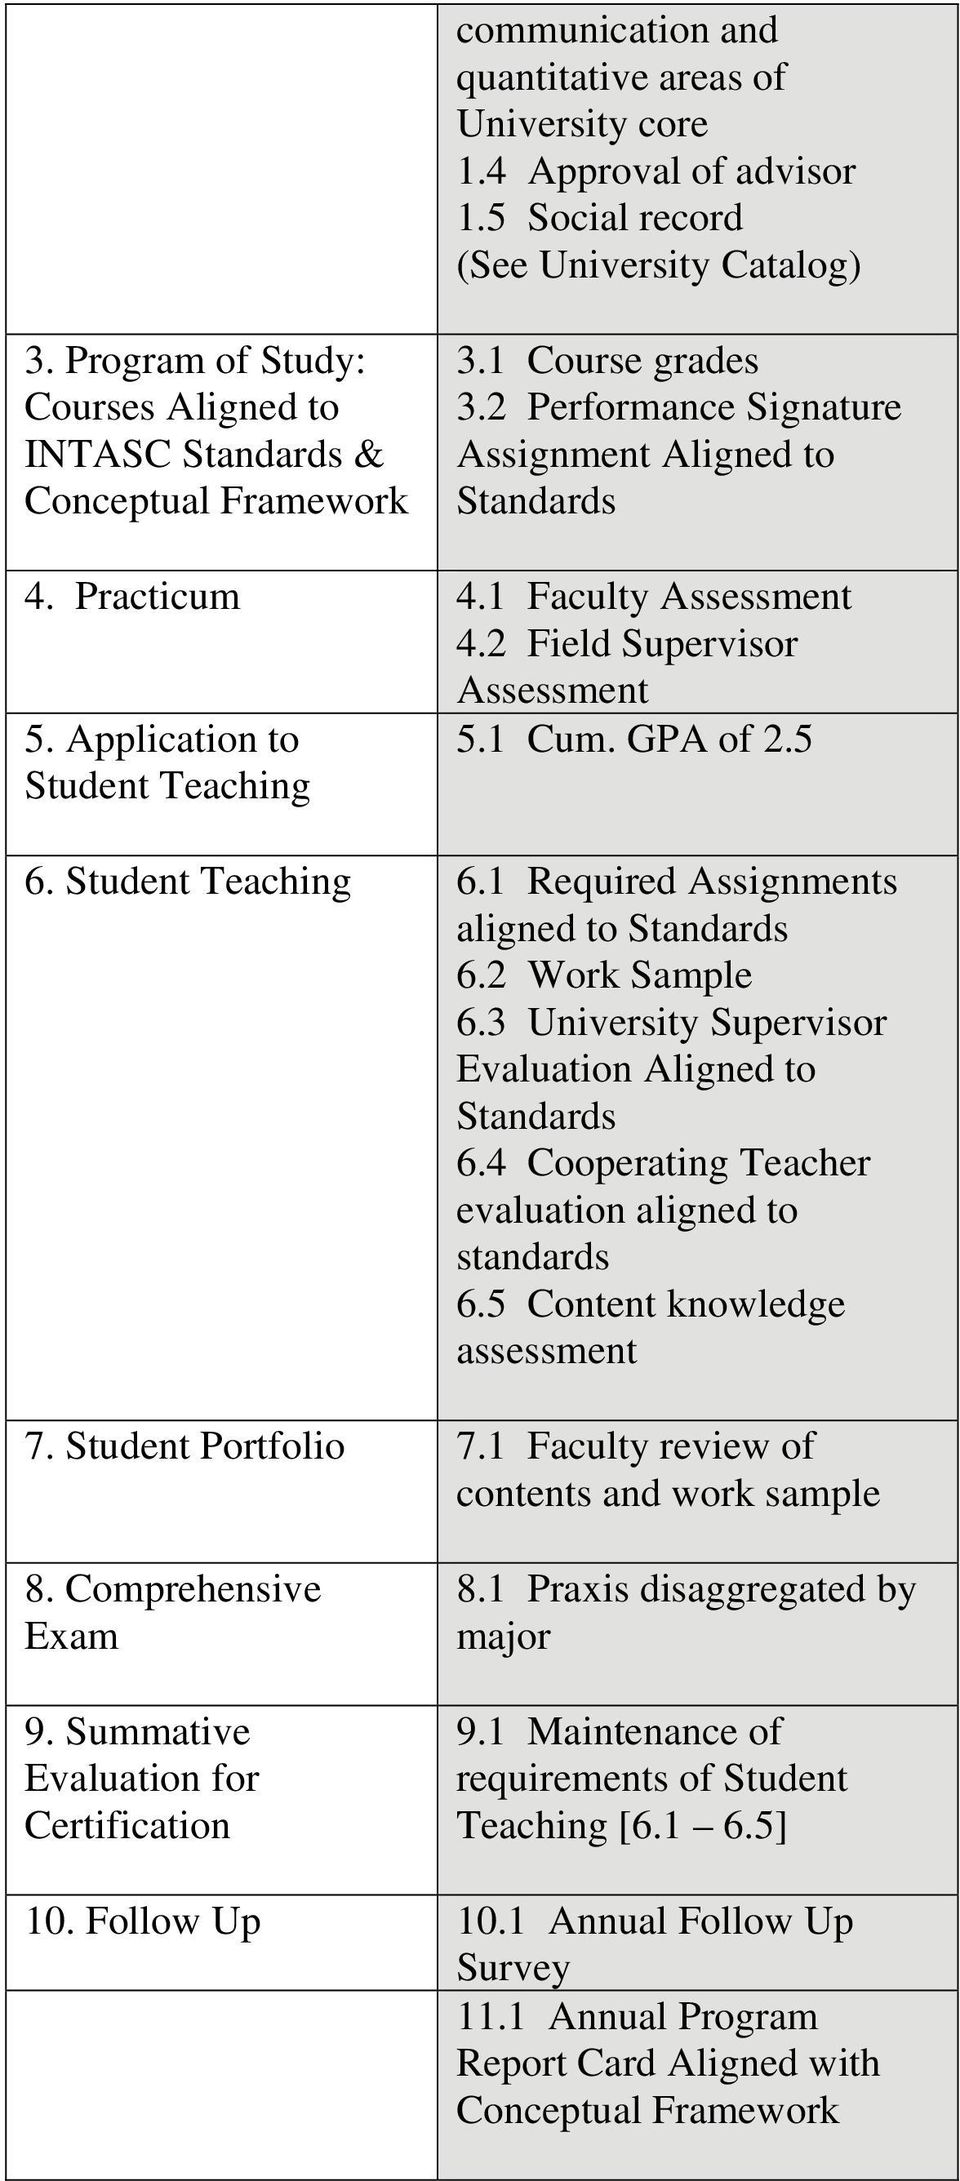 2 Field Supervisor Assessment 5. Application to 5.1 Cum. GPA of 2.5 Student Teaching 6. Student Teaching 6.1 Required Assignments aligned to Standards 6.2 Work Sample 6.